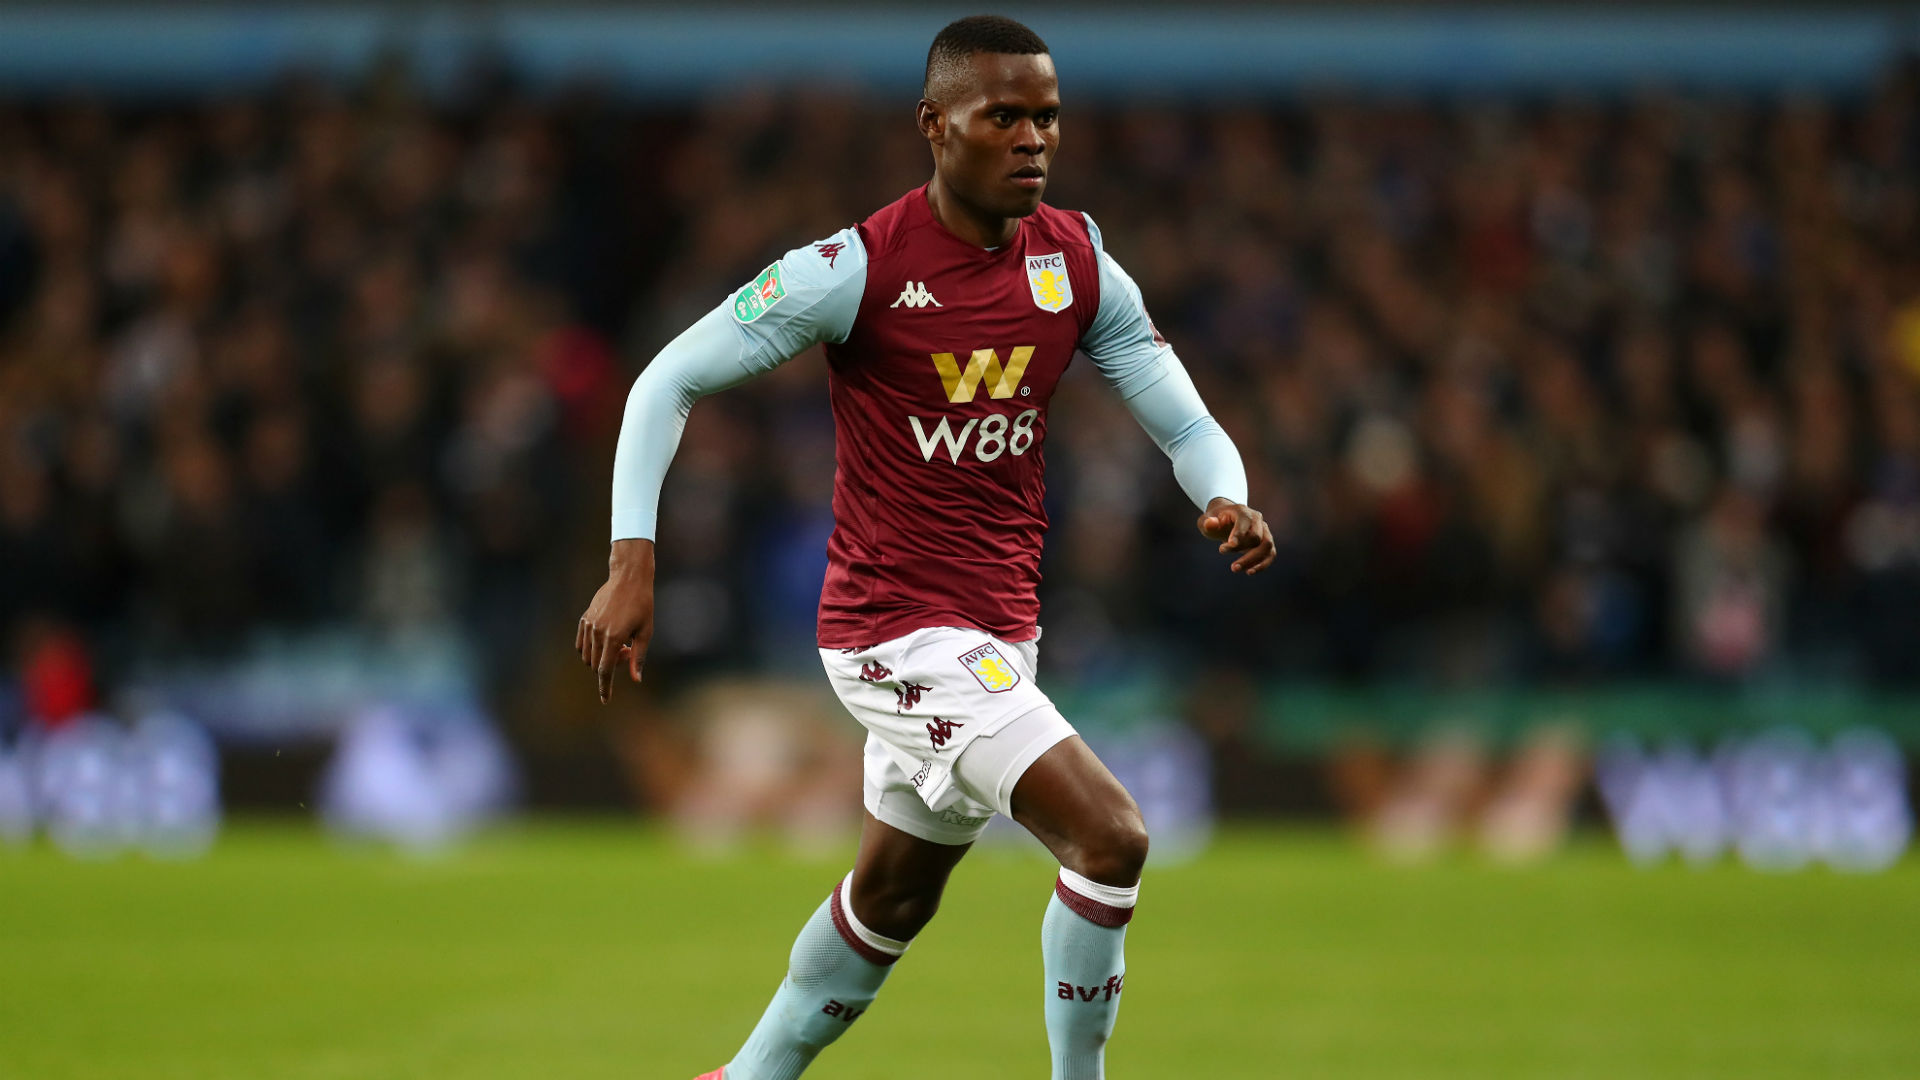 Samatta looks forward to Wembley experience with Aston Villa in League Cup final